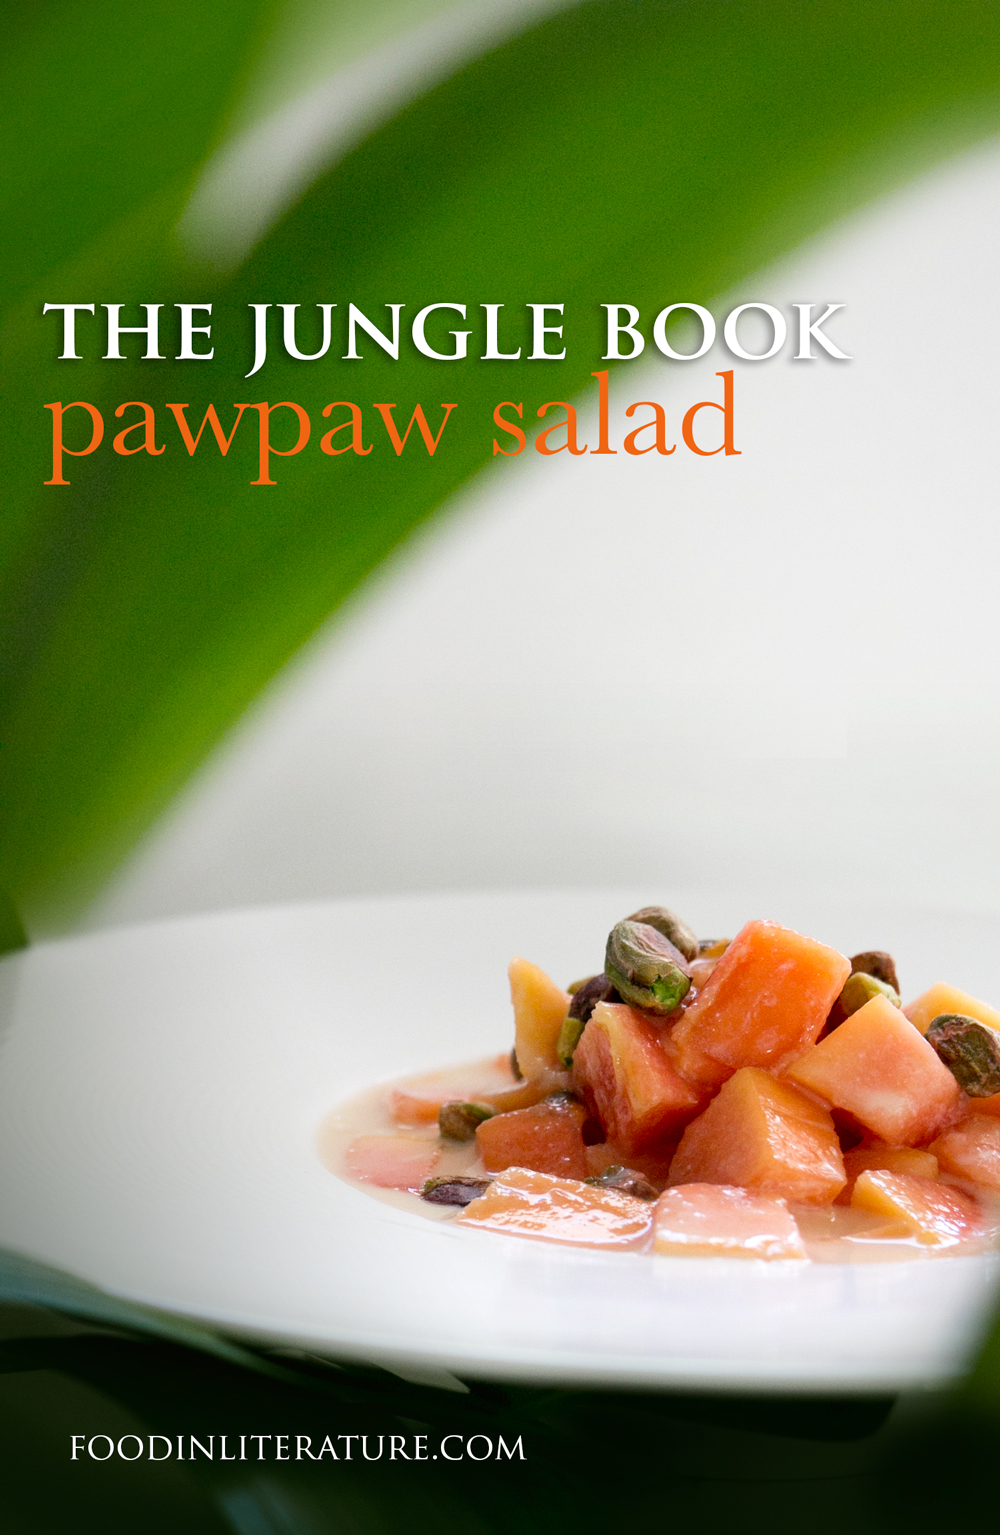 the jungle book pawpaw salad recipe